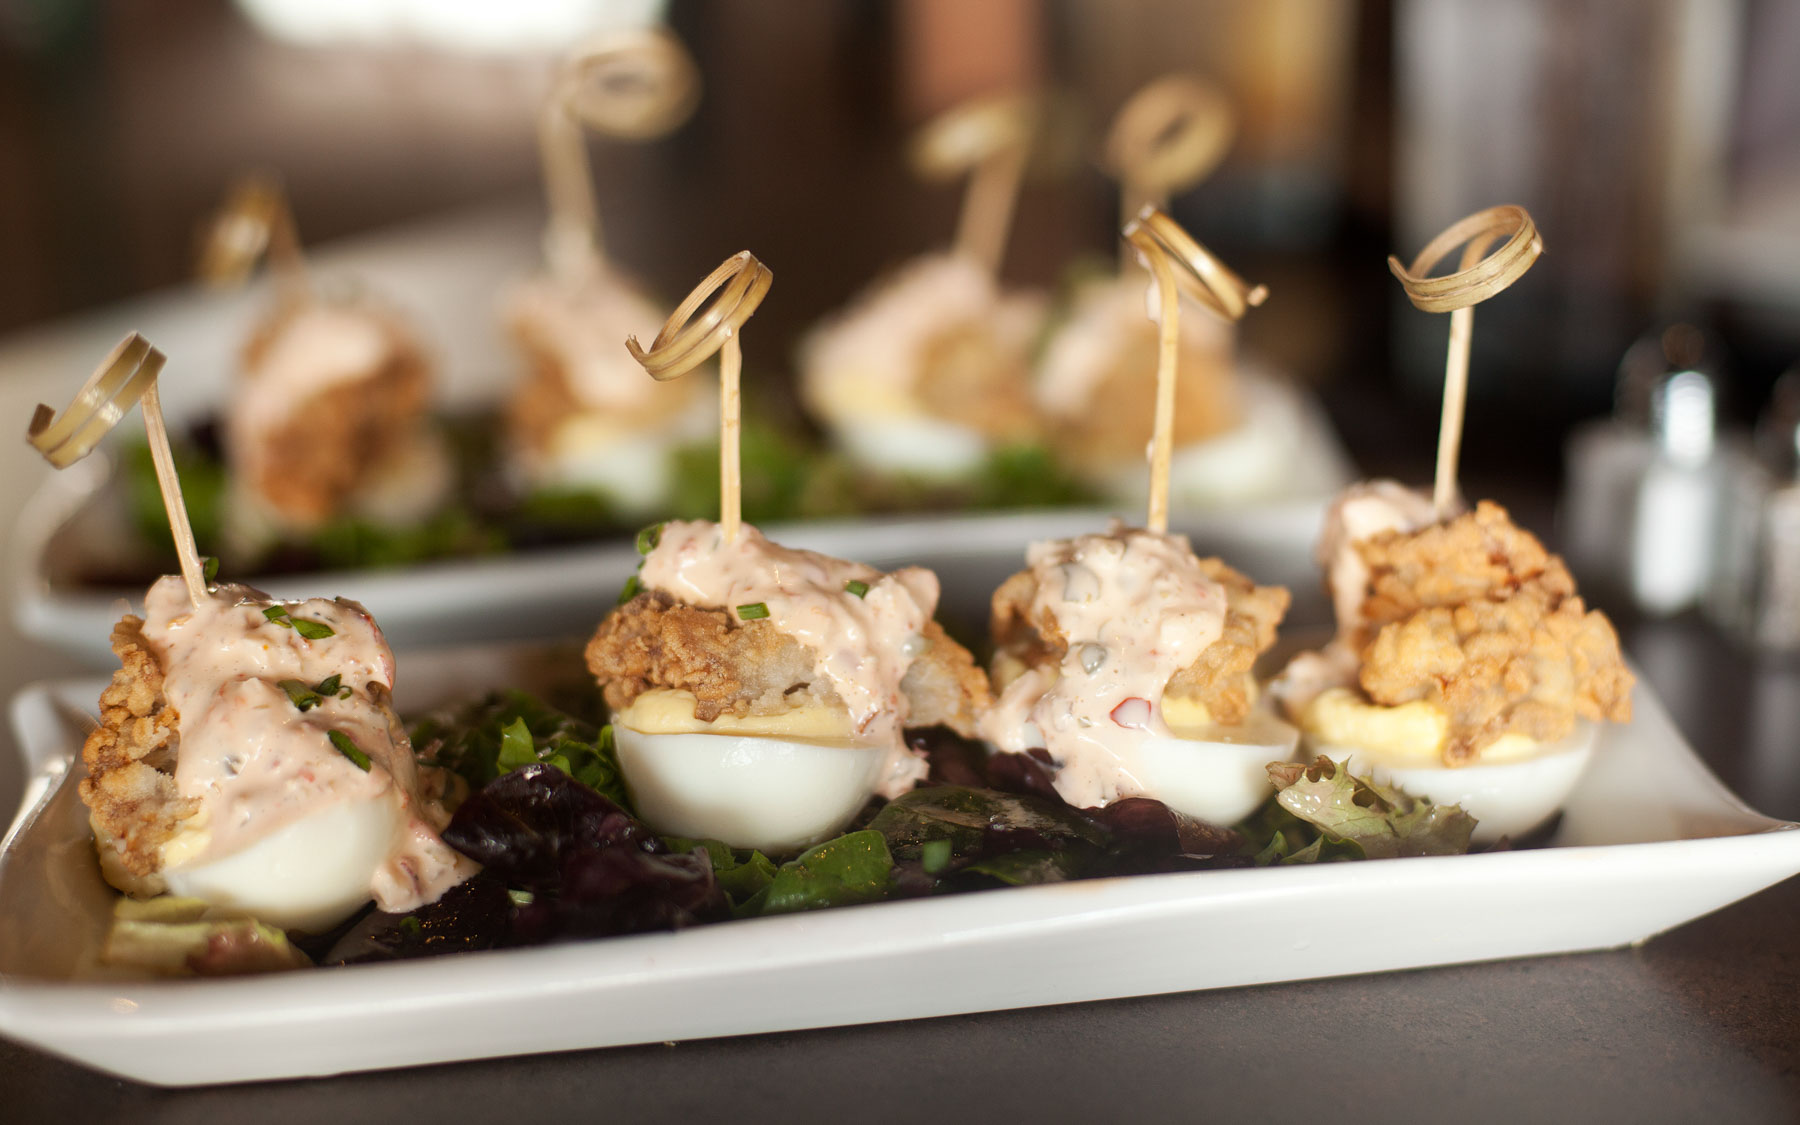 ... Hen Bistro & Wine- Deviled Eggs : Fried oyster, spicy remoulade, chive